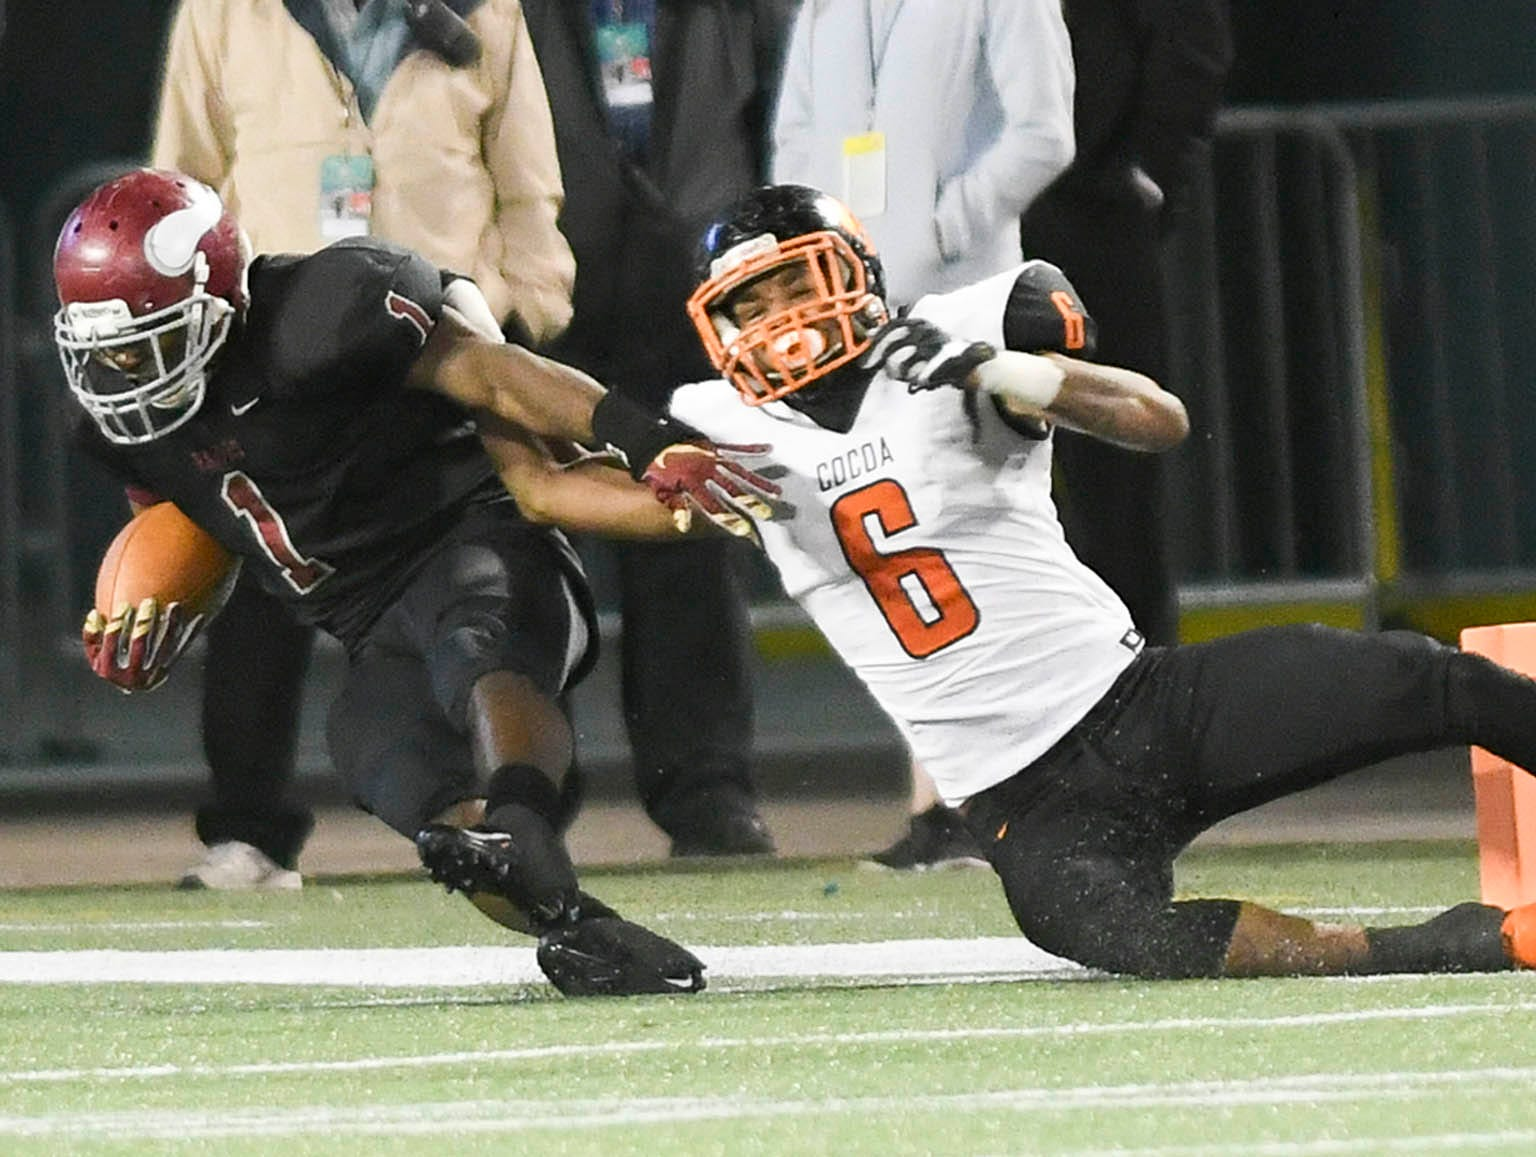 Cocoa's Tyrique Sears drags down Brandon Marshall of Raines as he scores a touchdown in Thursday's Class 4A football state championship.